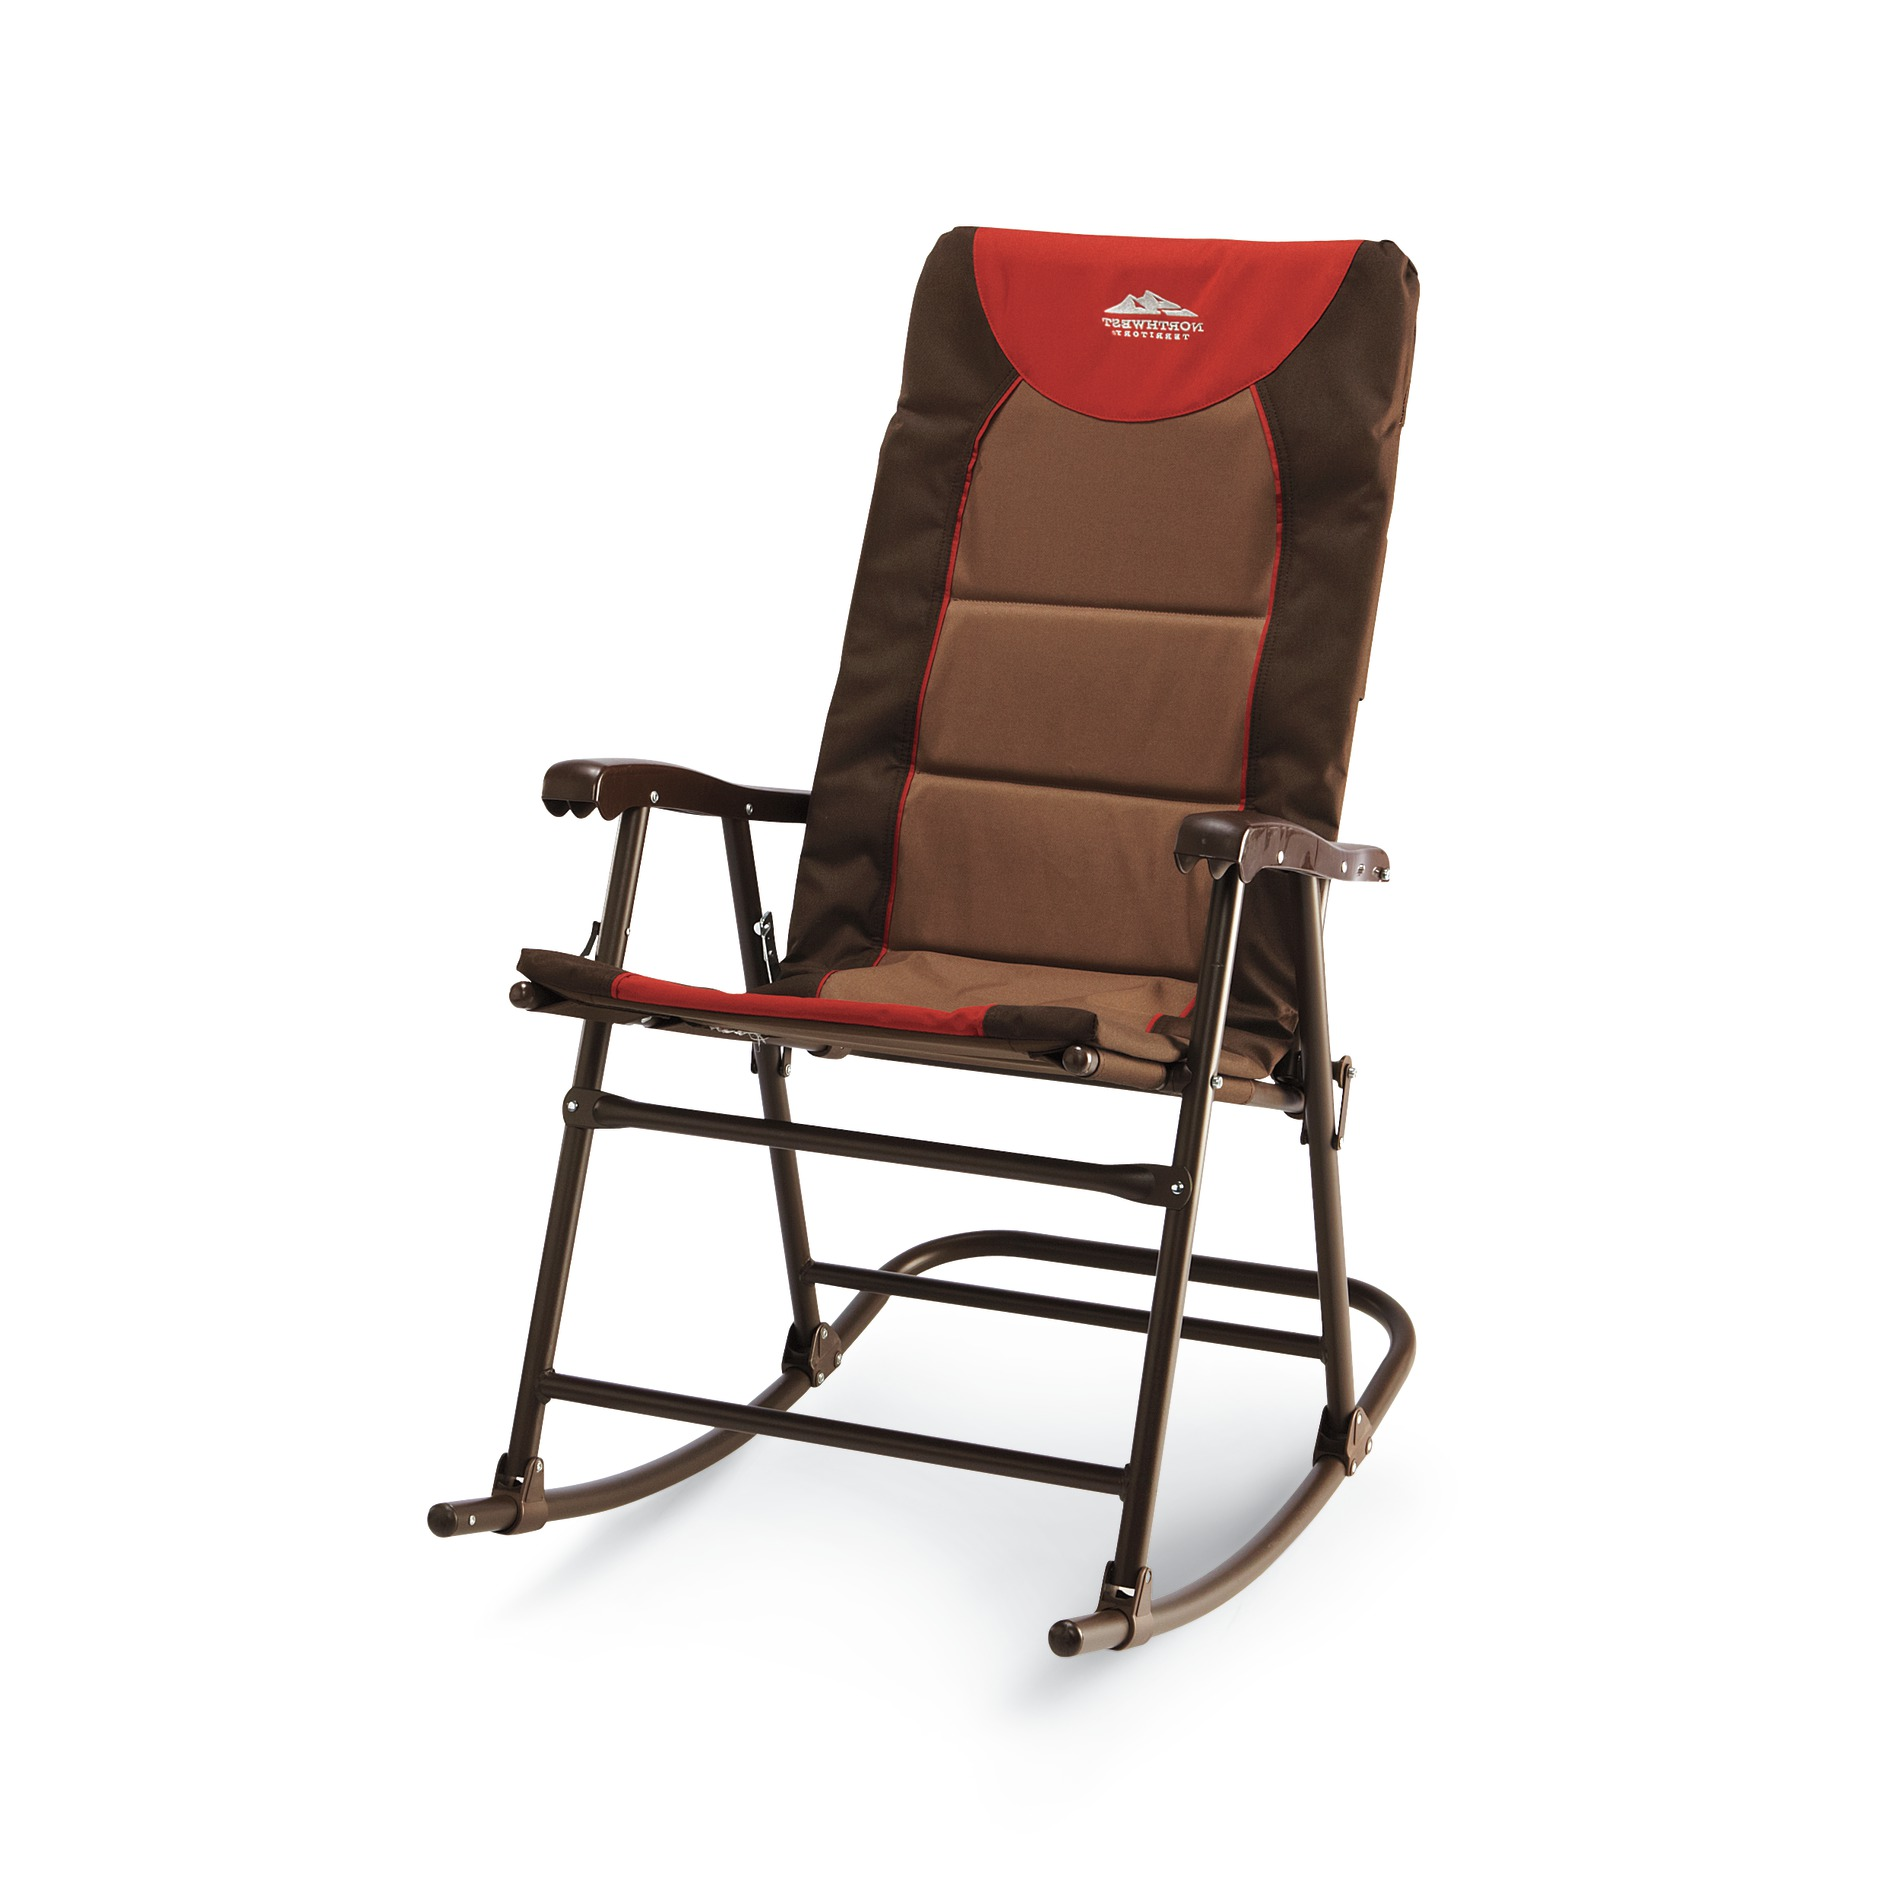 Picnic Chair Rocking Chair Folding Outdoor Camping Patio Comfortable